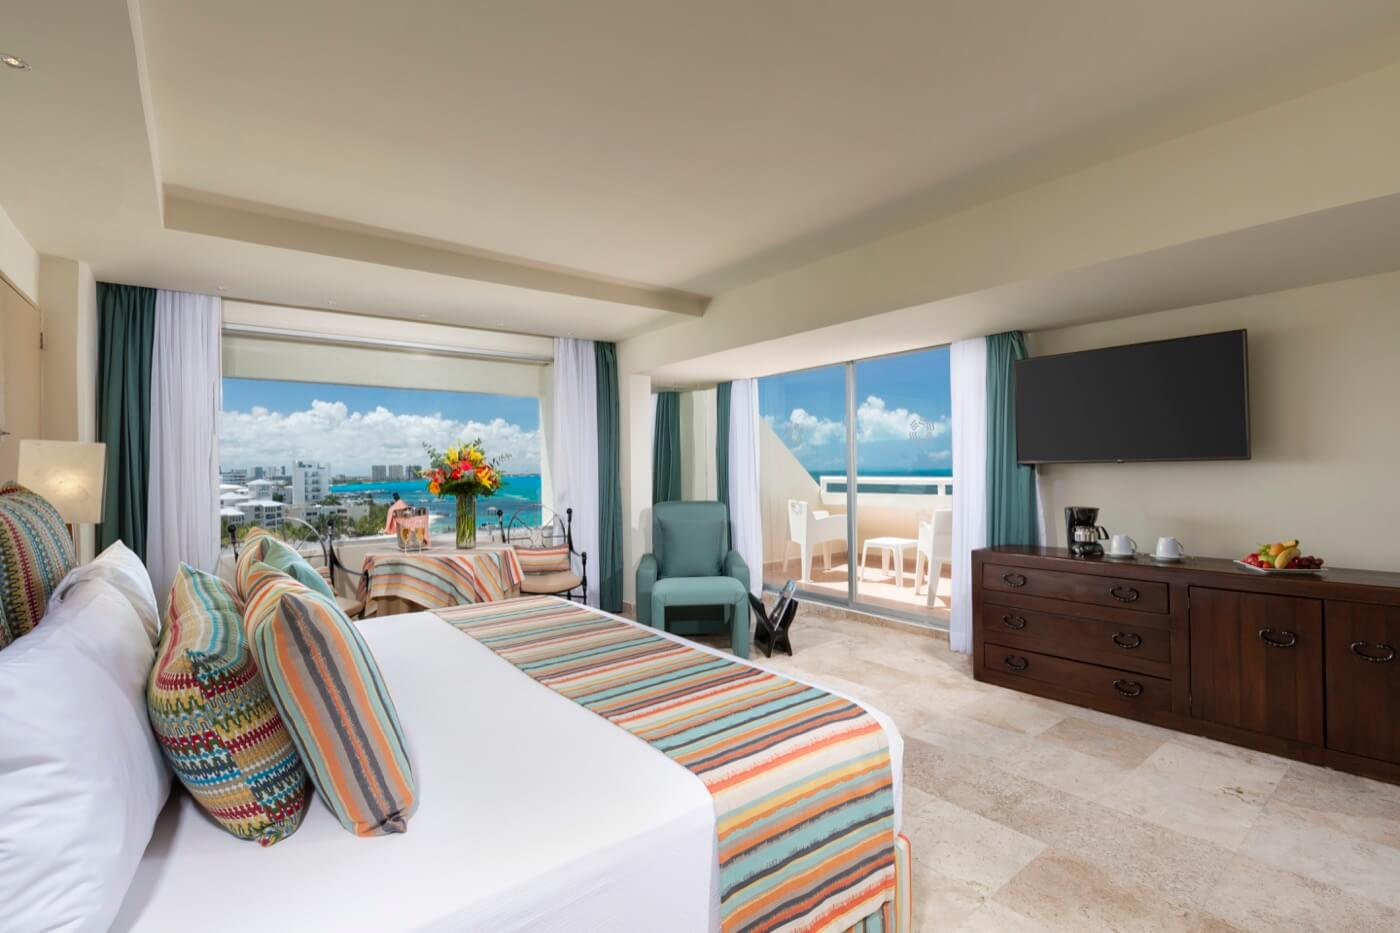 Ocean View Room with King Size bed at Grand Oasis Palm Hotel